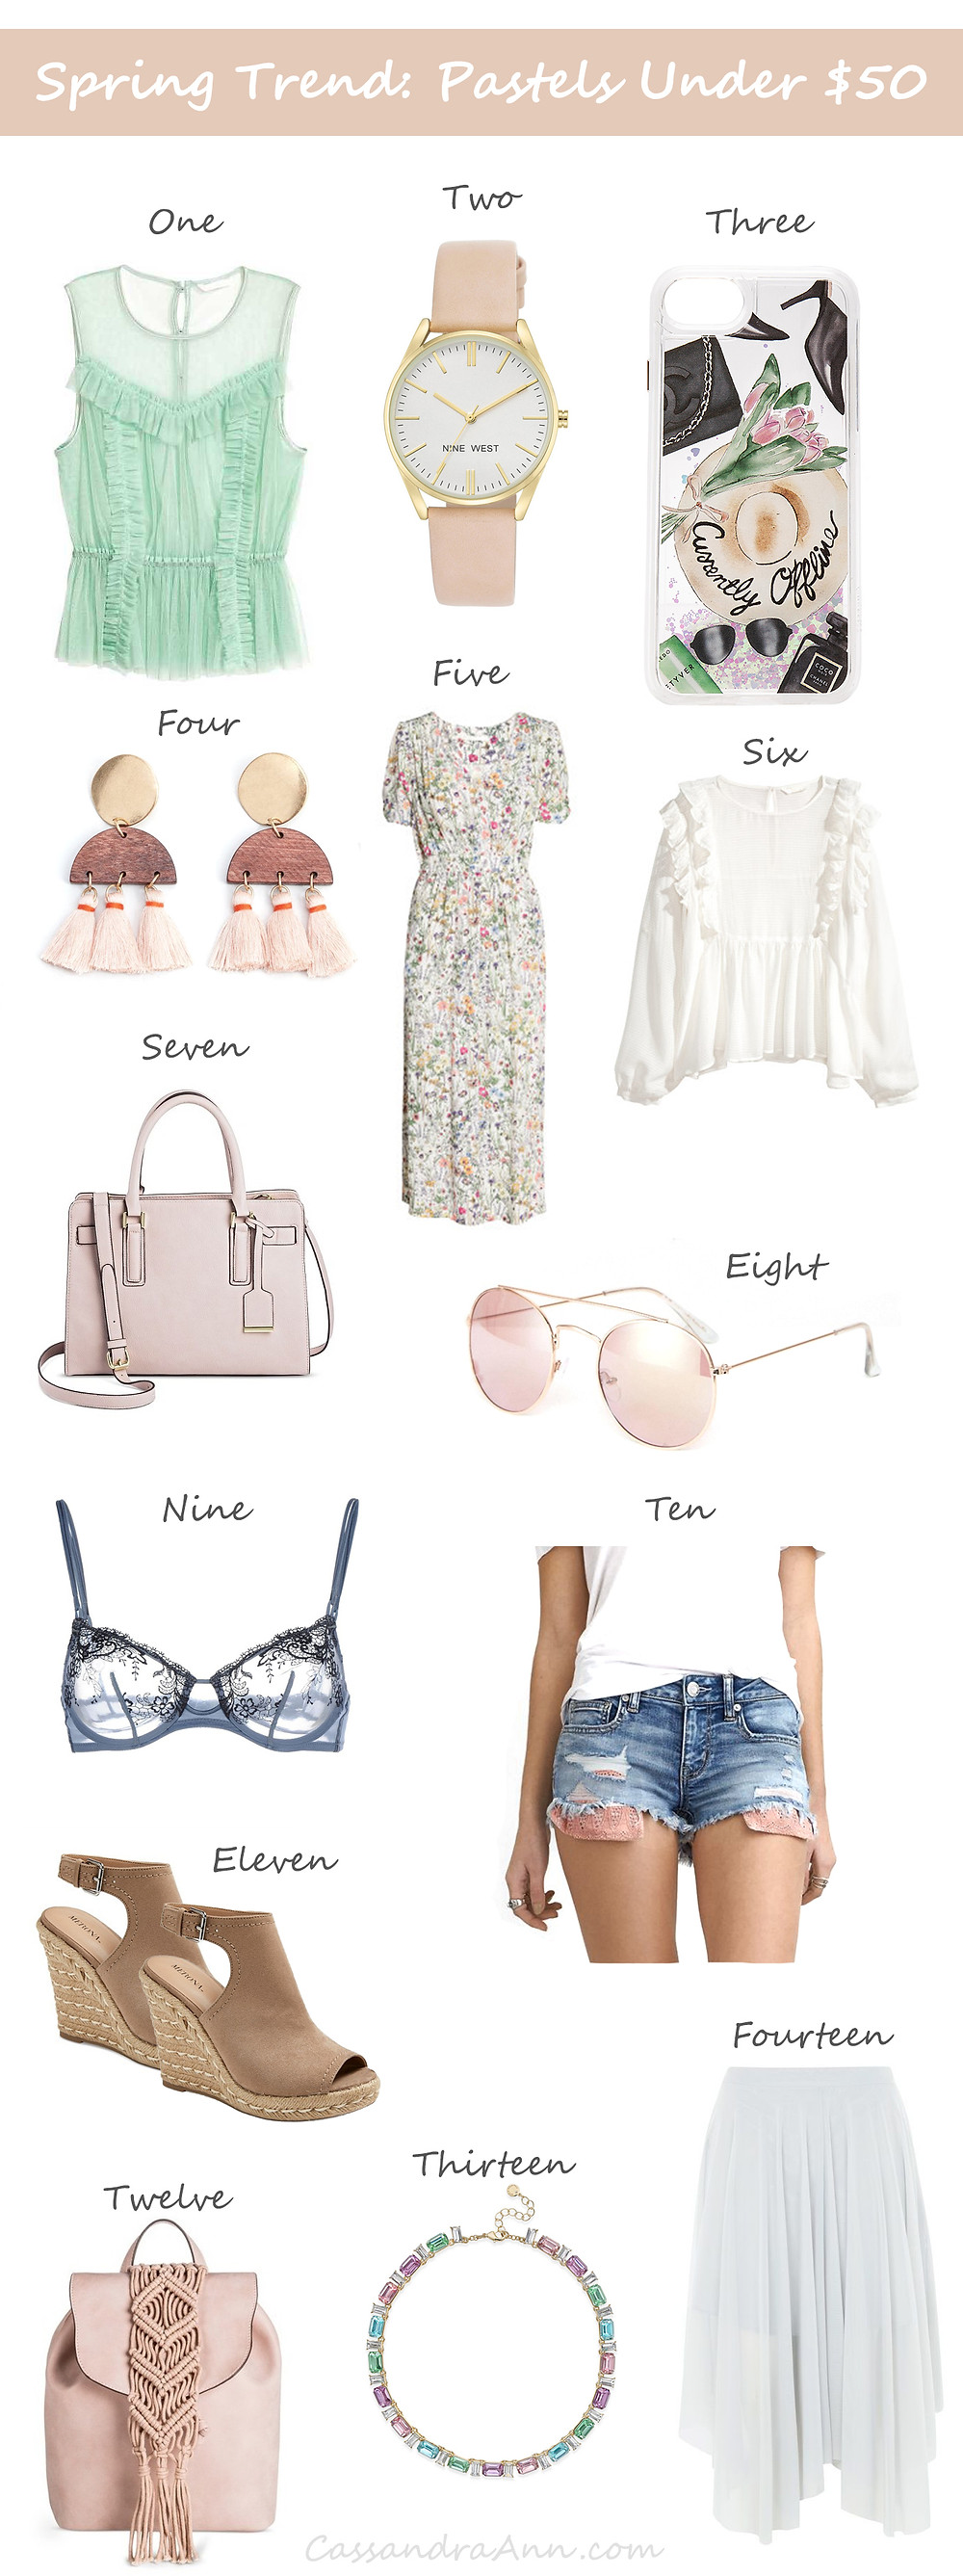 Spring Trend: Fashion Pastel Outfit Under $50 - Affordable fashion